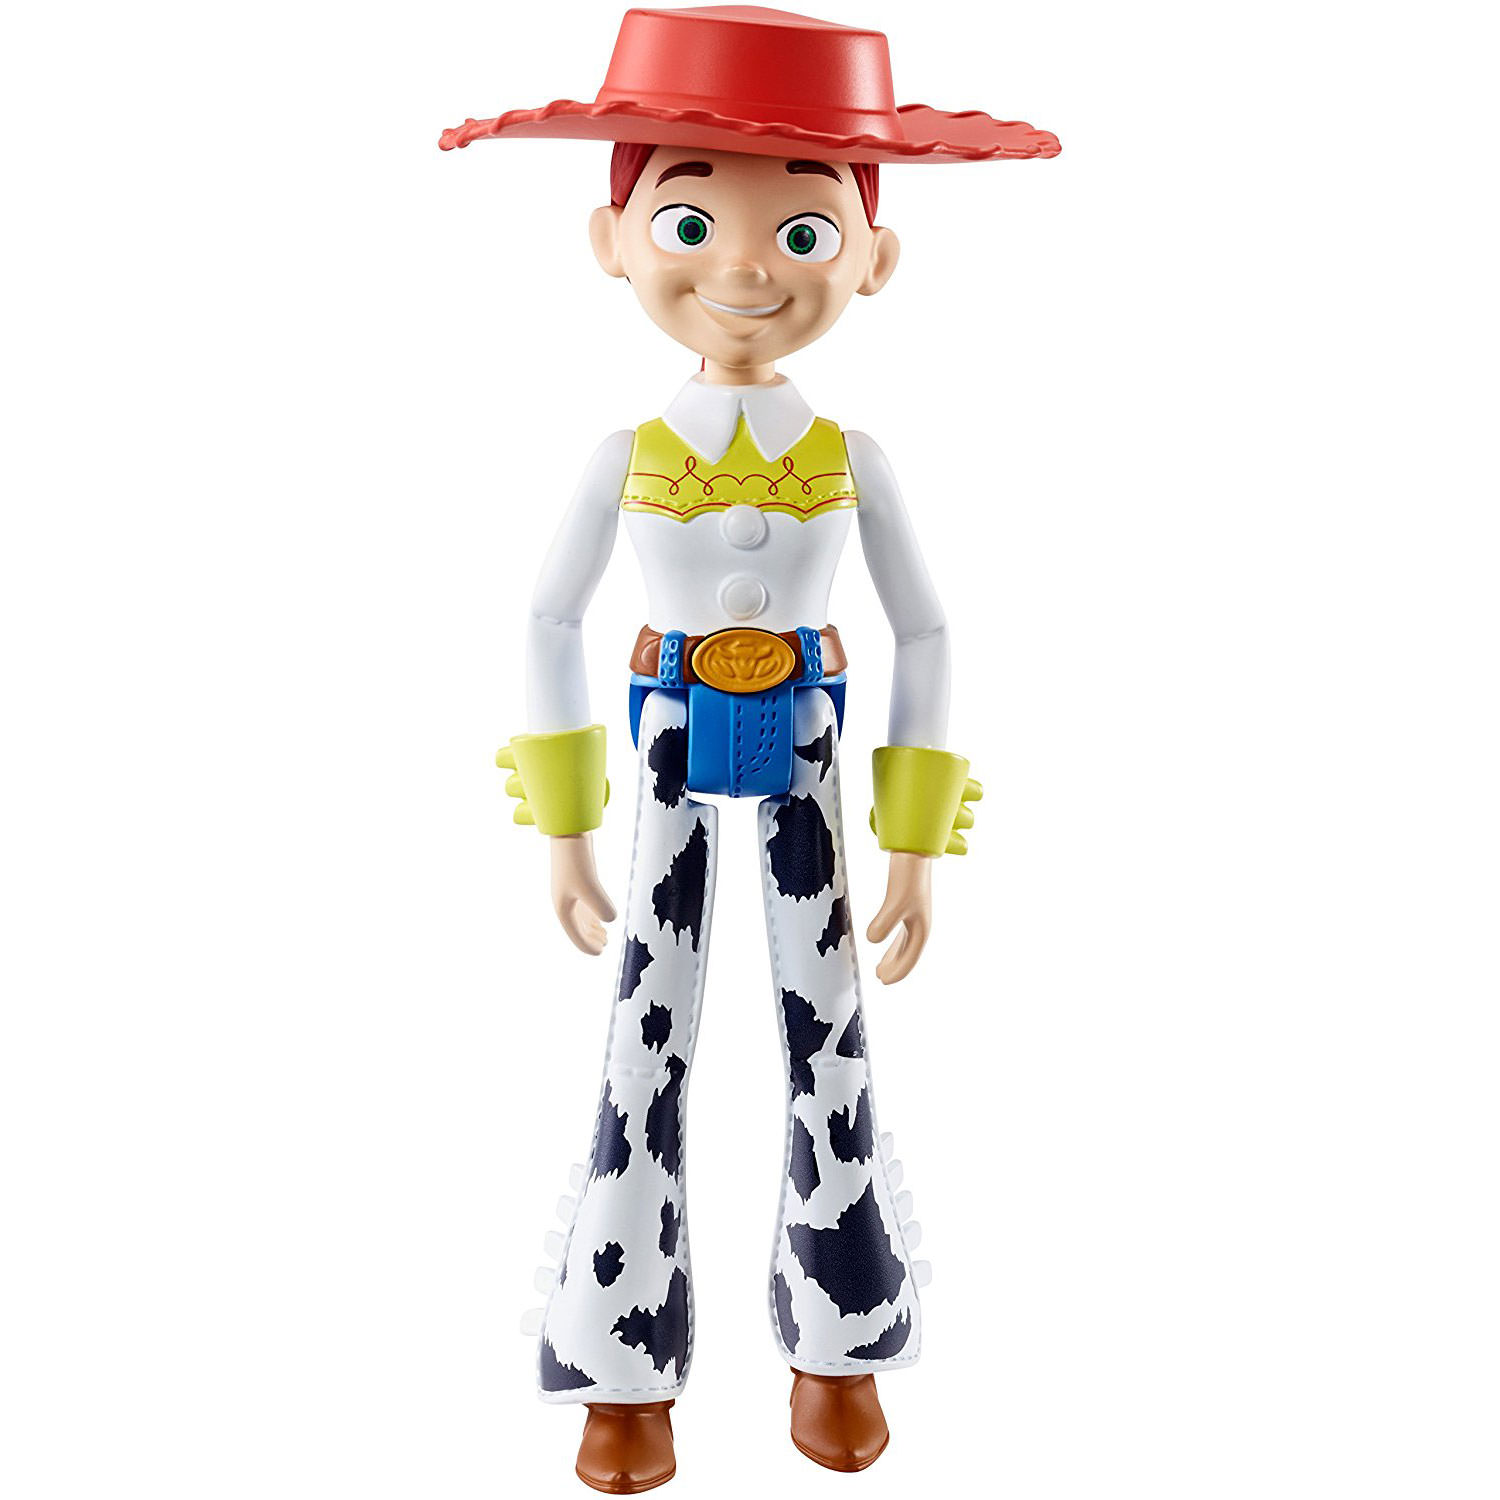 Disney Pixar Toy Story 6 Quot Talking Figure Jessie At Hobby